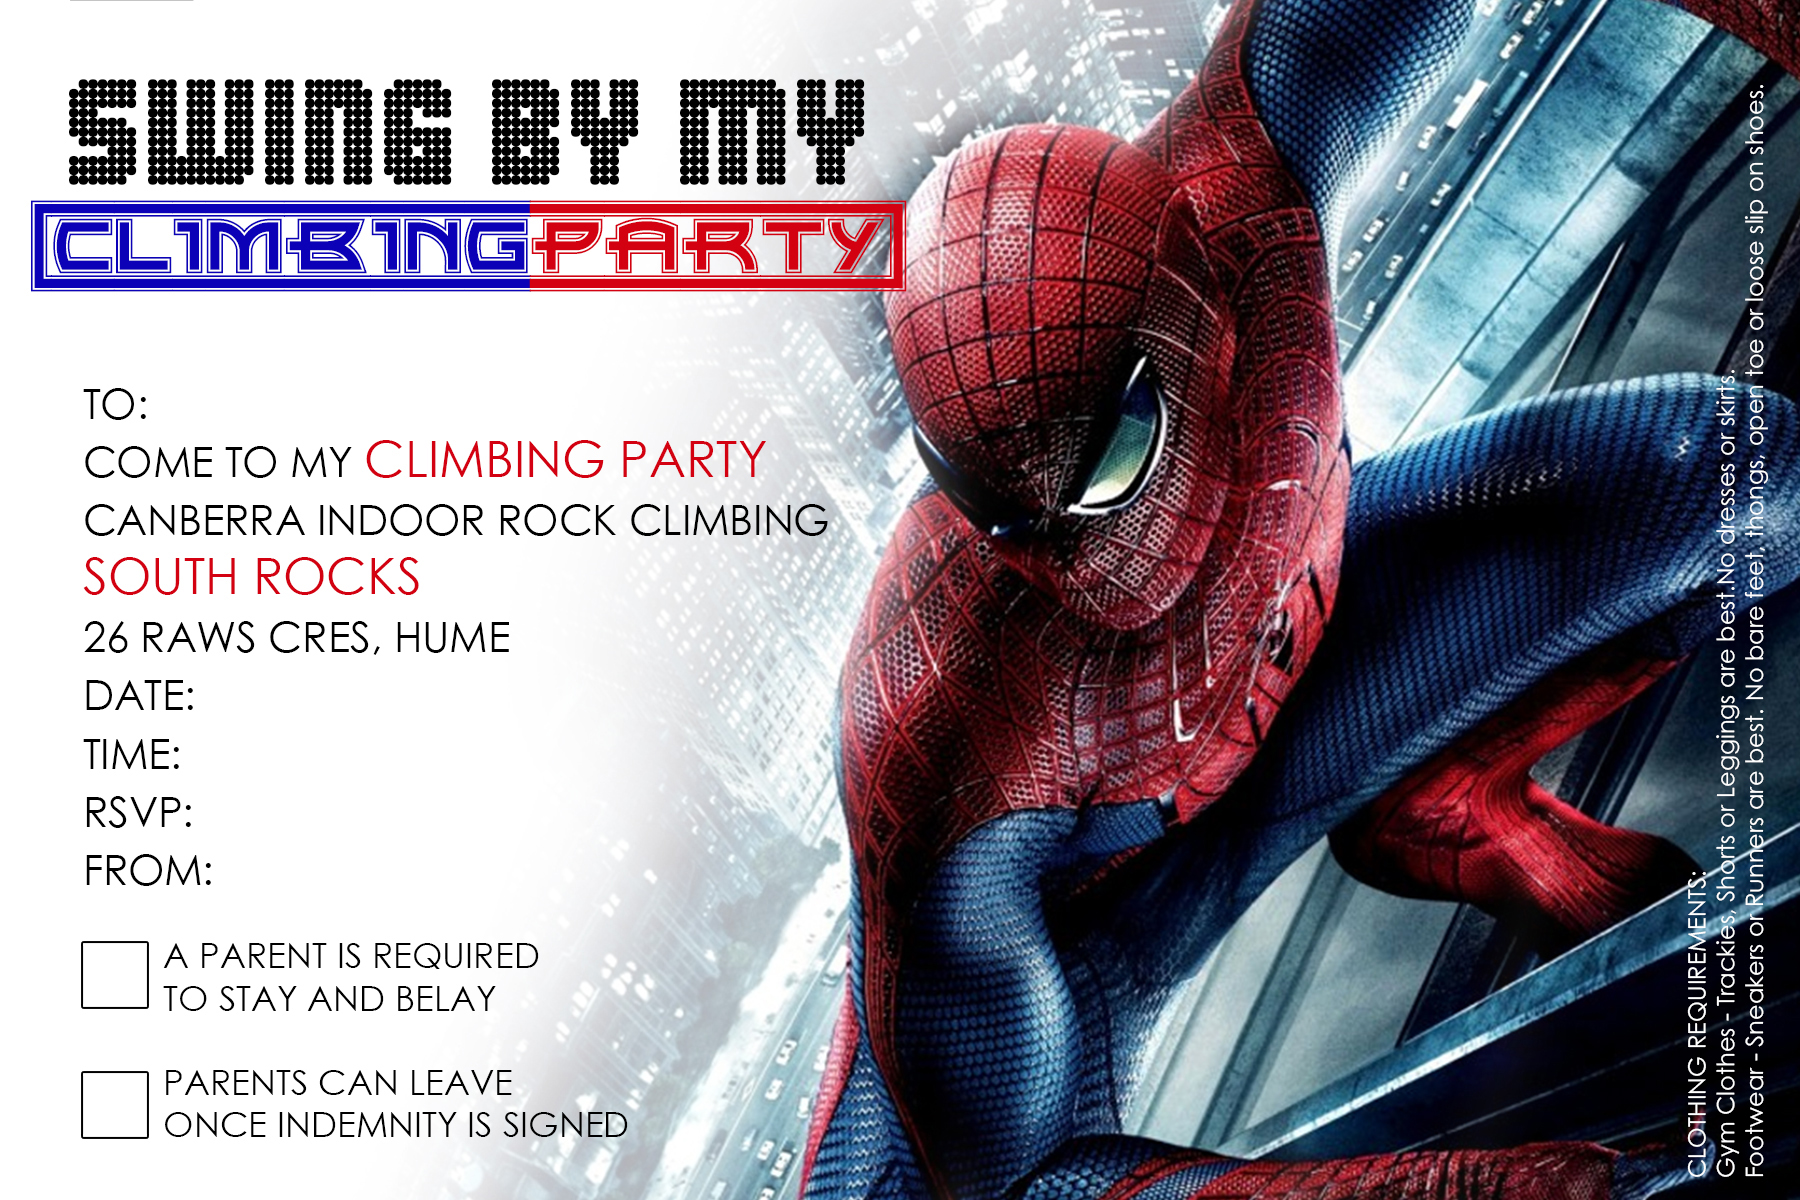 Invitation To Climbing Party Spiderman Hume Canberra Indoor Rock